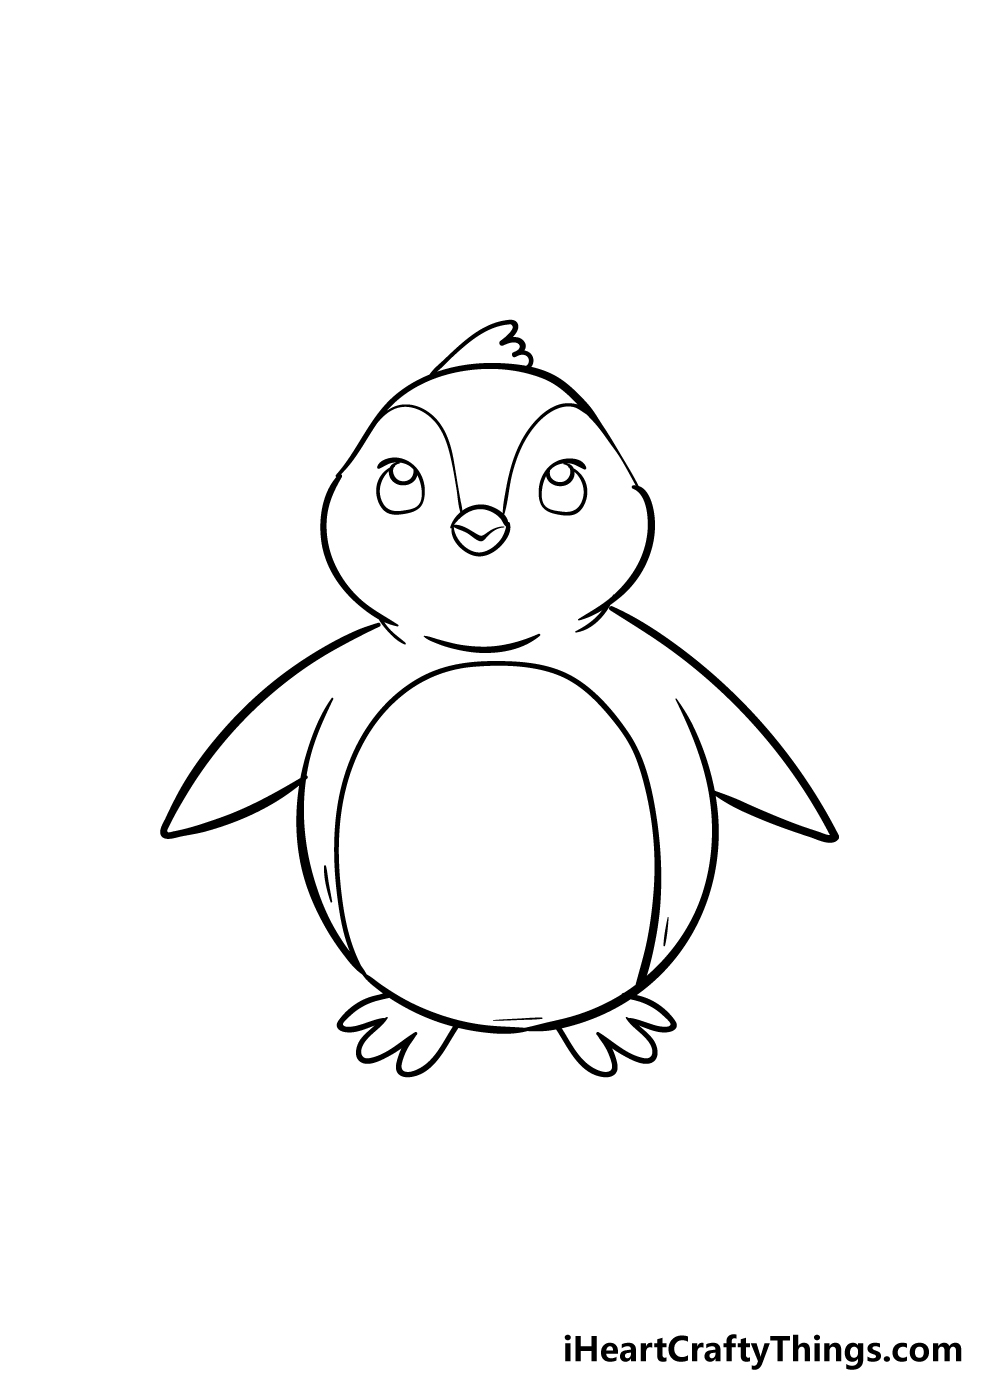 penguin drawing step 6